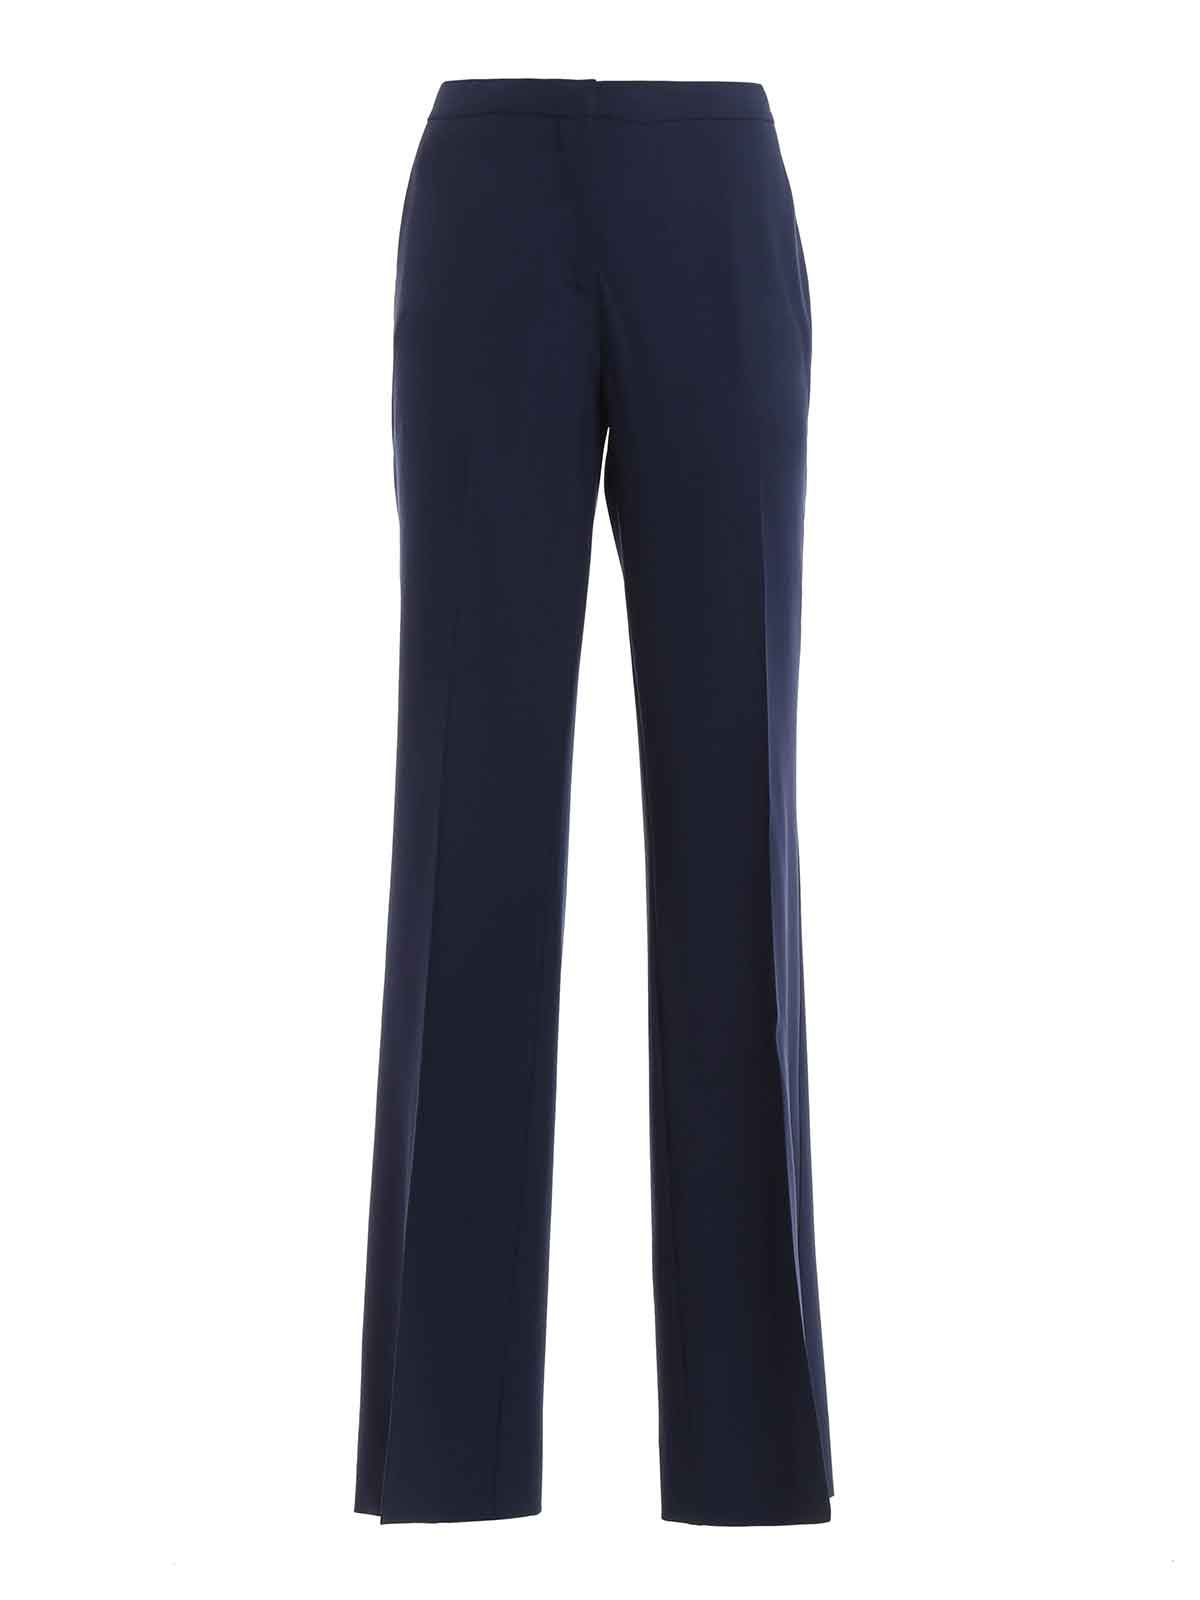 wide-leg tailored trousers - Blue Diane Von F Cheap Price Outlet Sale Free Shipping 100% Original Orange 100% Original Discount Clearance Fake DpOUtPILB